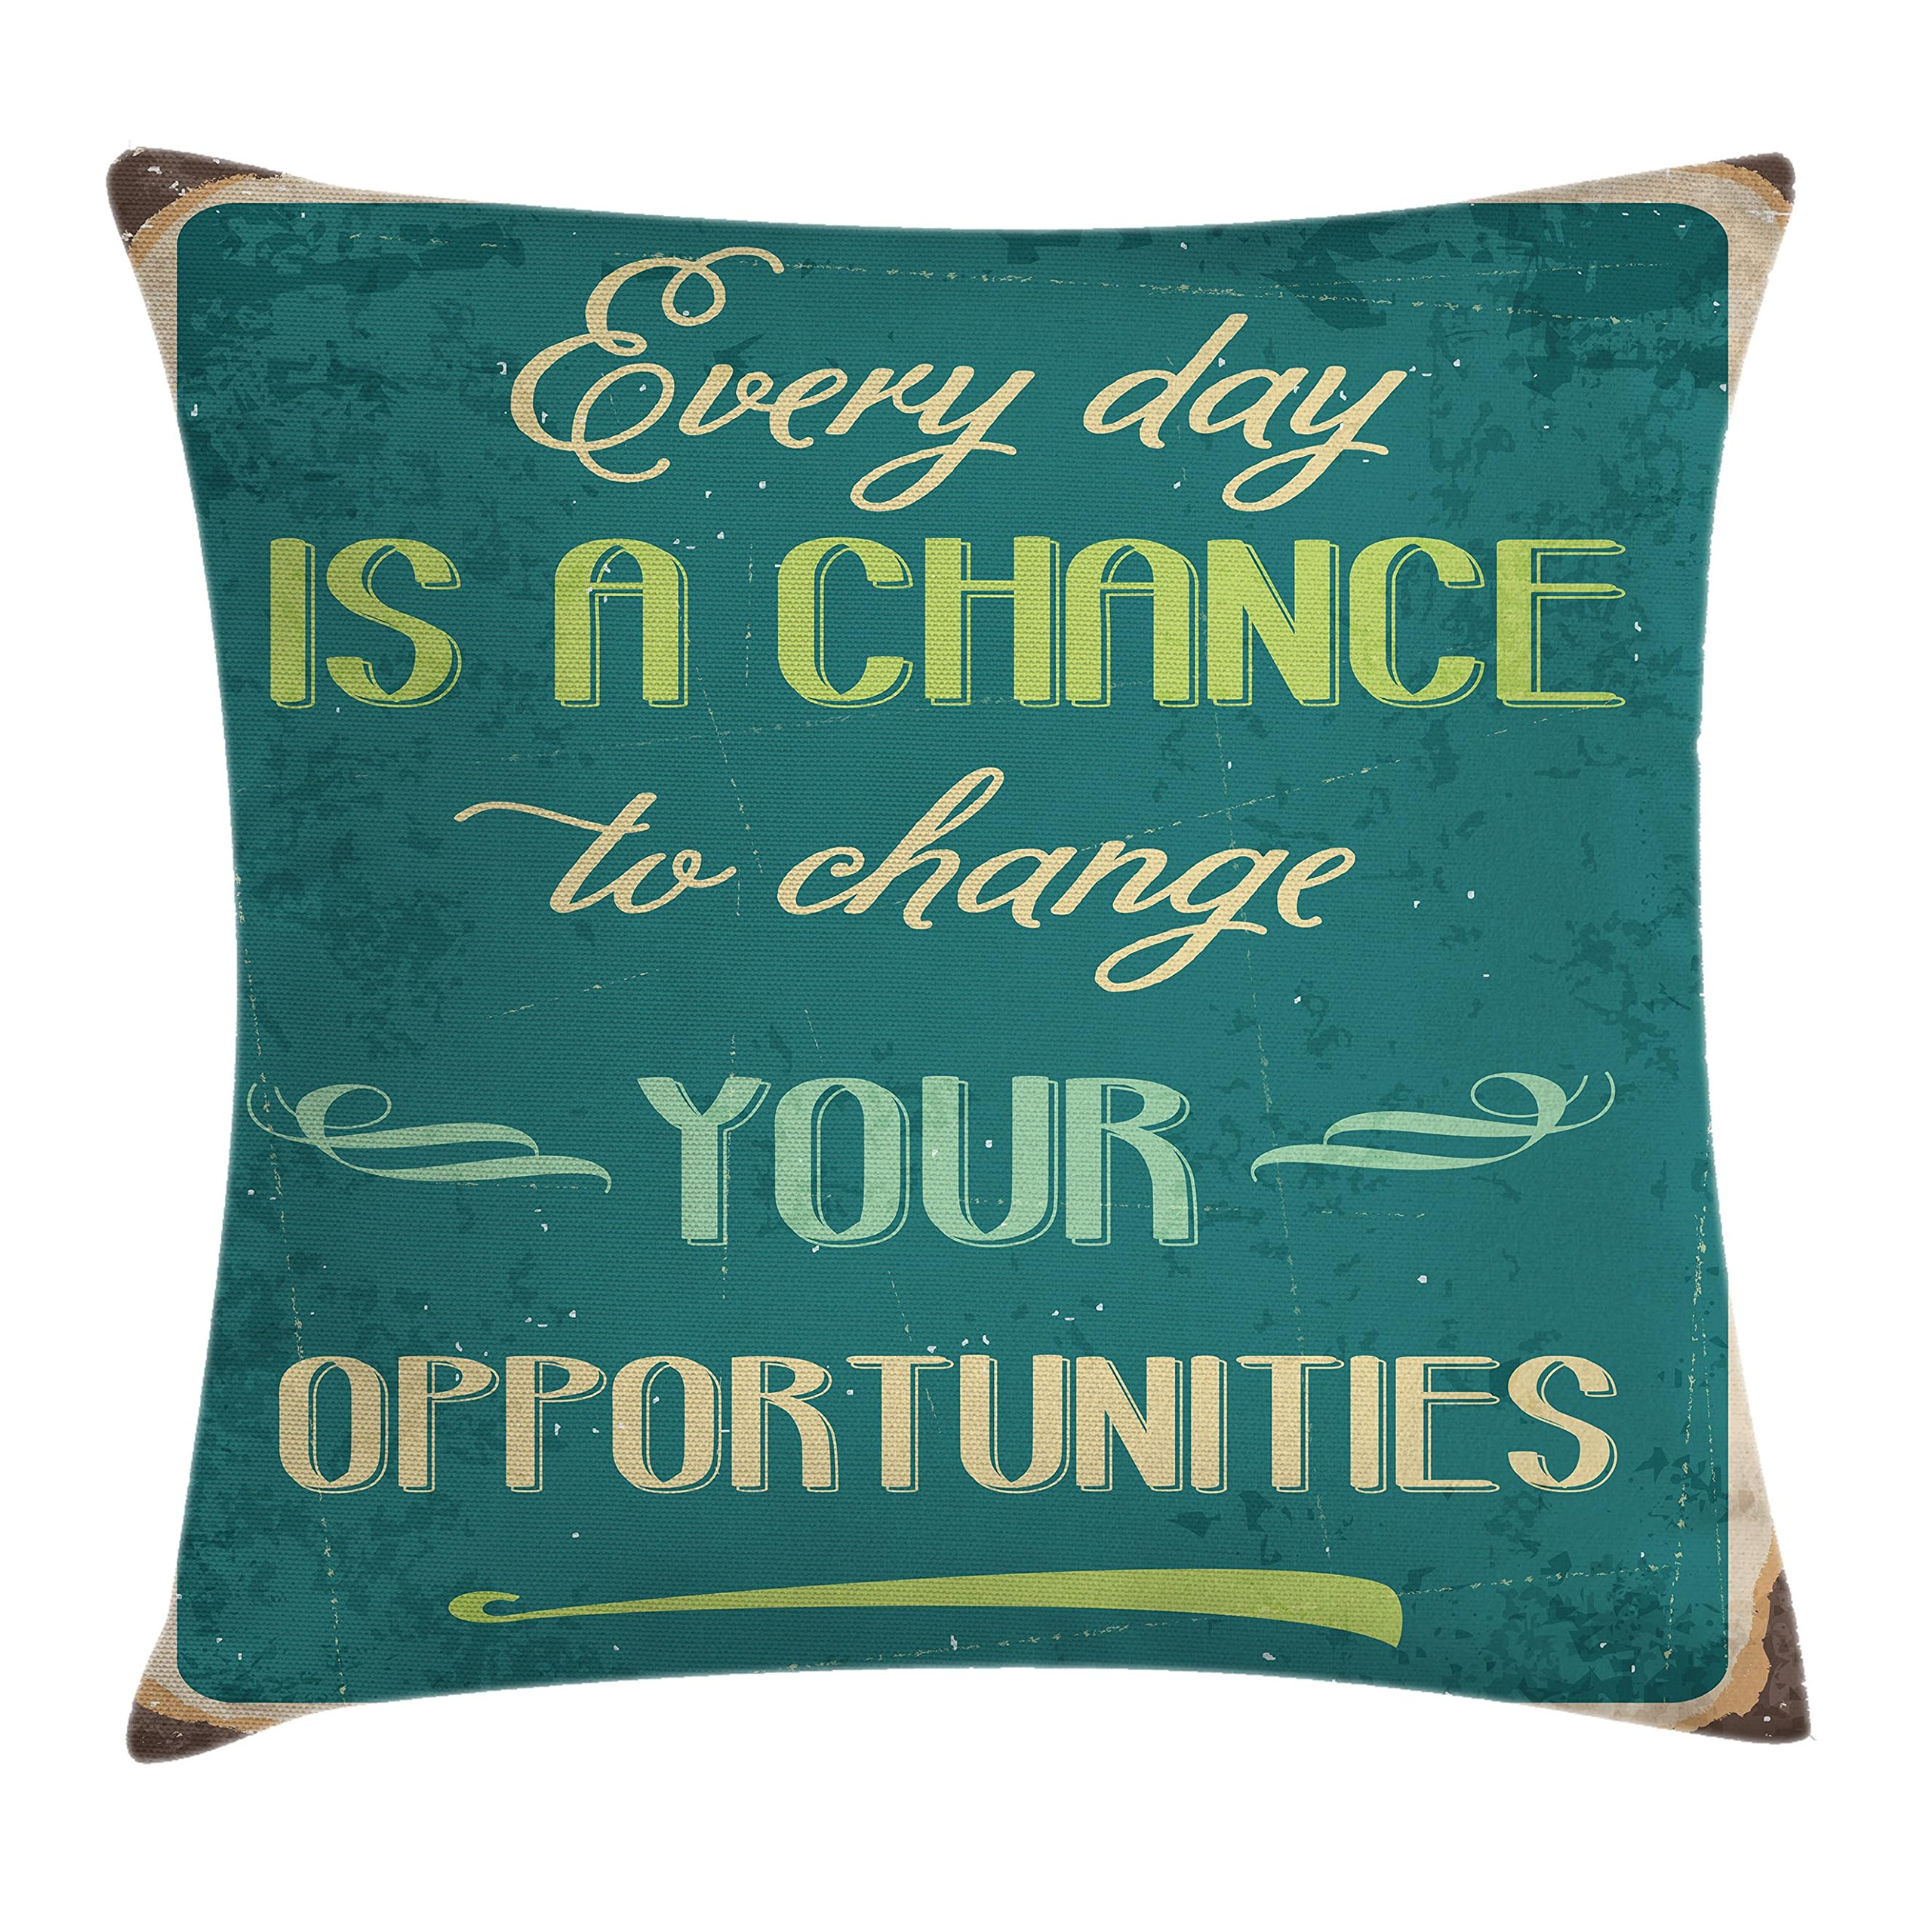 Ambesonne Lifestyle Throw Pillow Cushion Cover, Every Day is a Chance to Change Your Opportunities Quote Retro Poster Print, Decorative Square Accent Pillow Case, 18 X 18 inches, Jade Green Tan